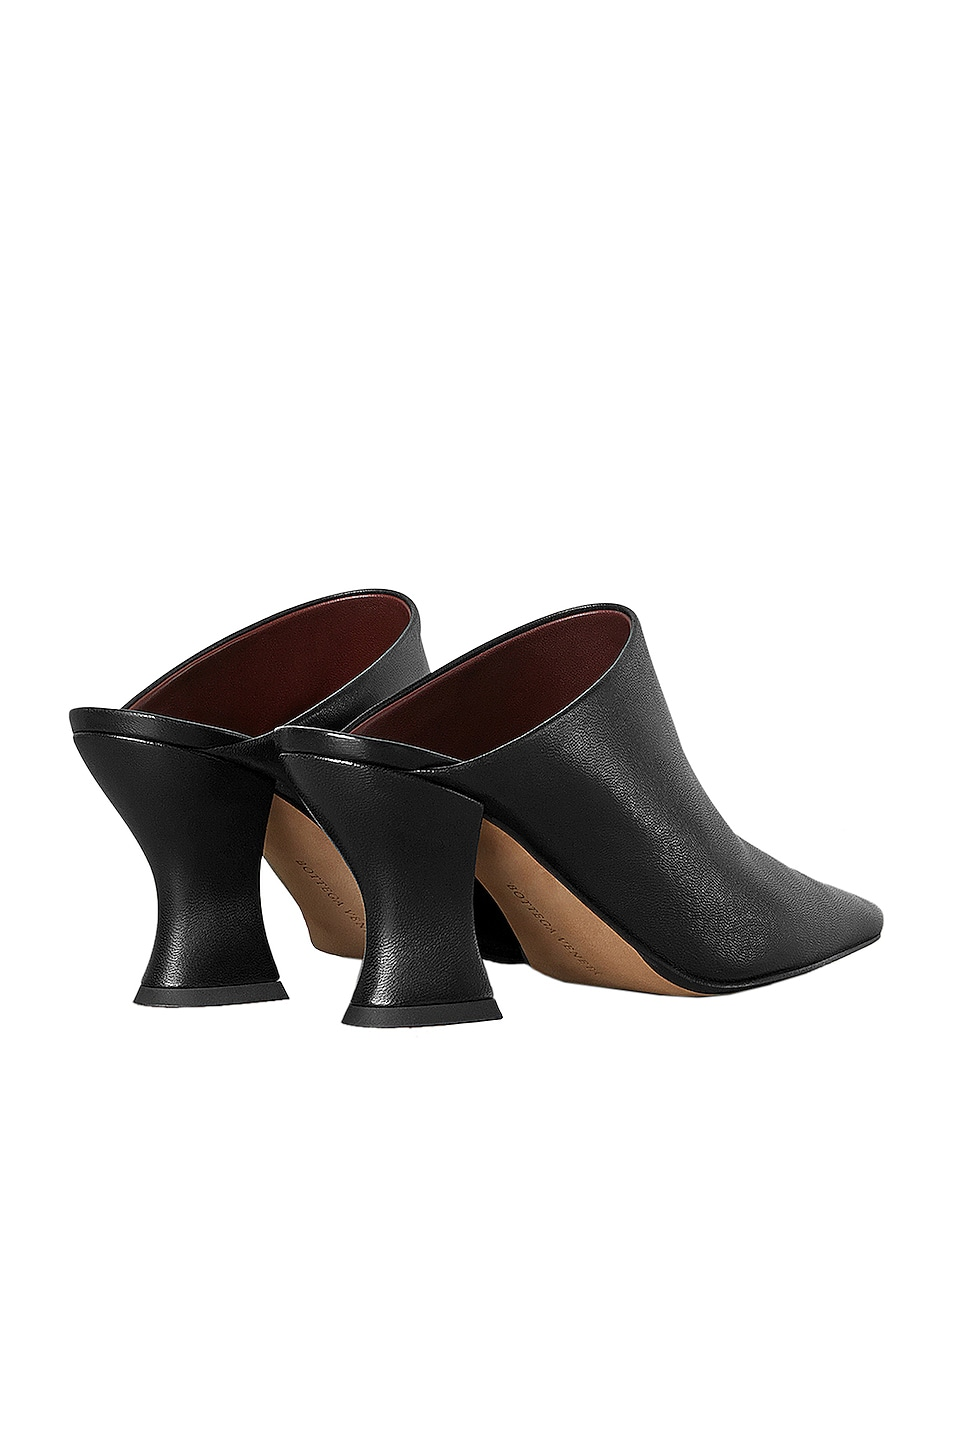 Image 3 of Bottega Veneta Leather Pointed Toe Mules in Black